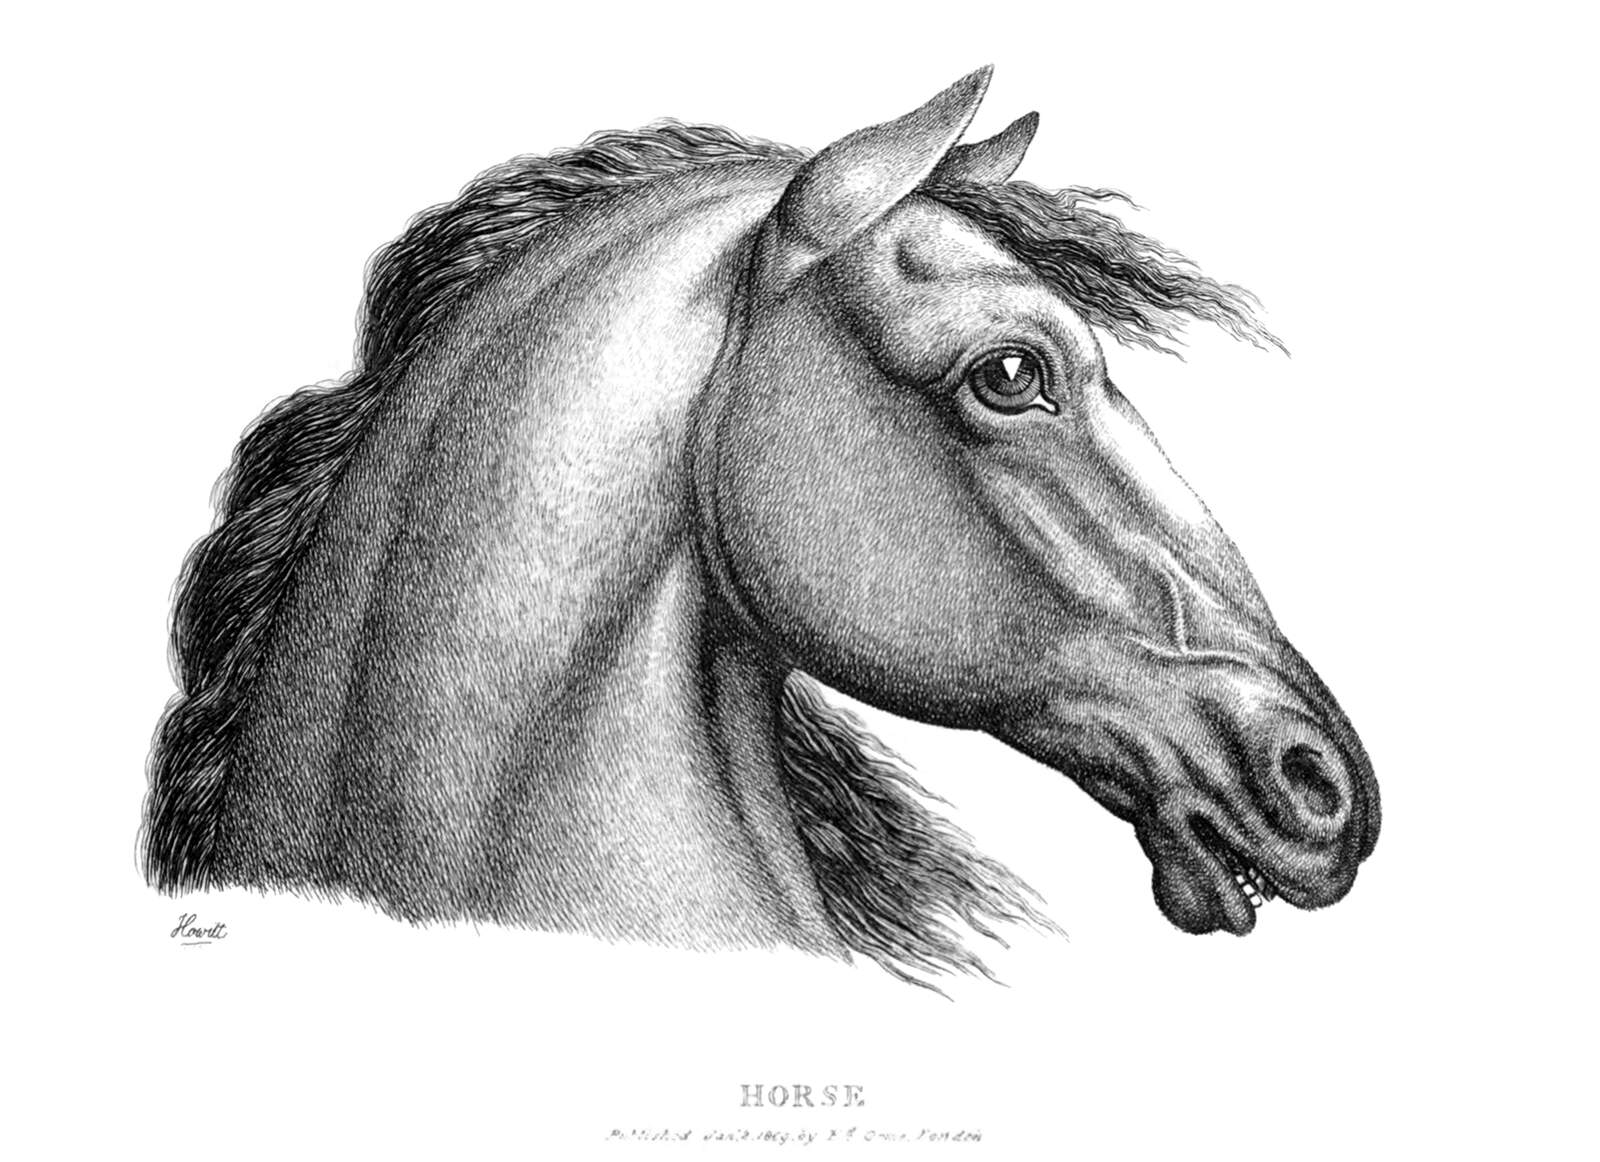 Horse S Profile Old Book Illustrations